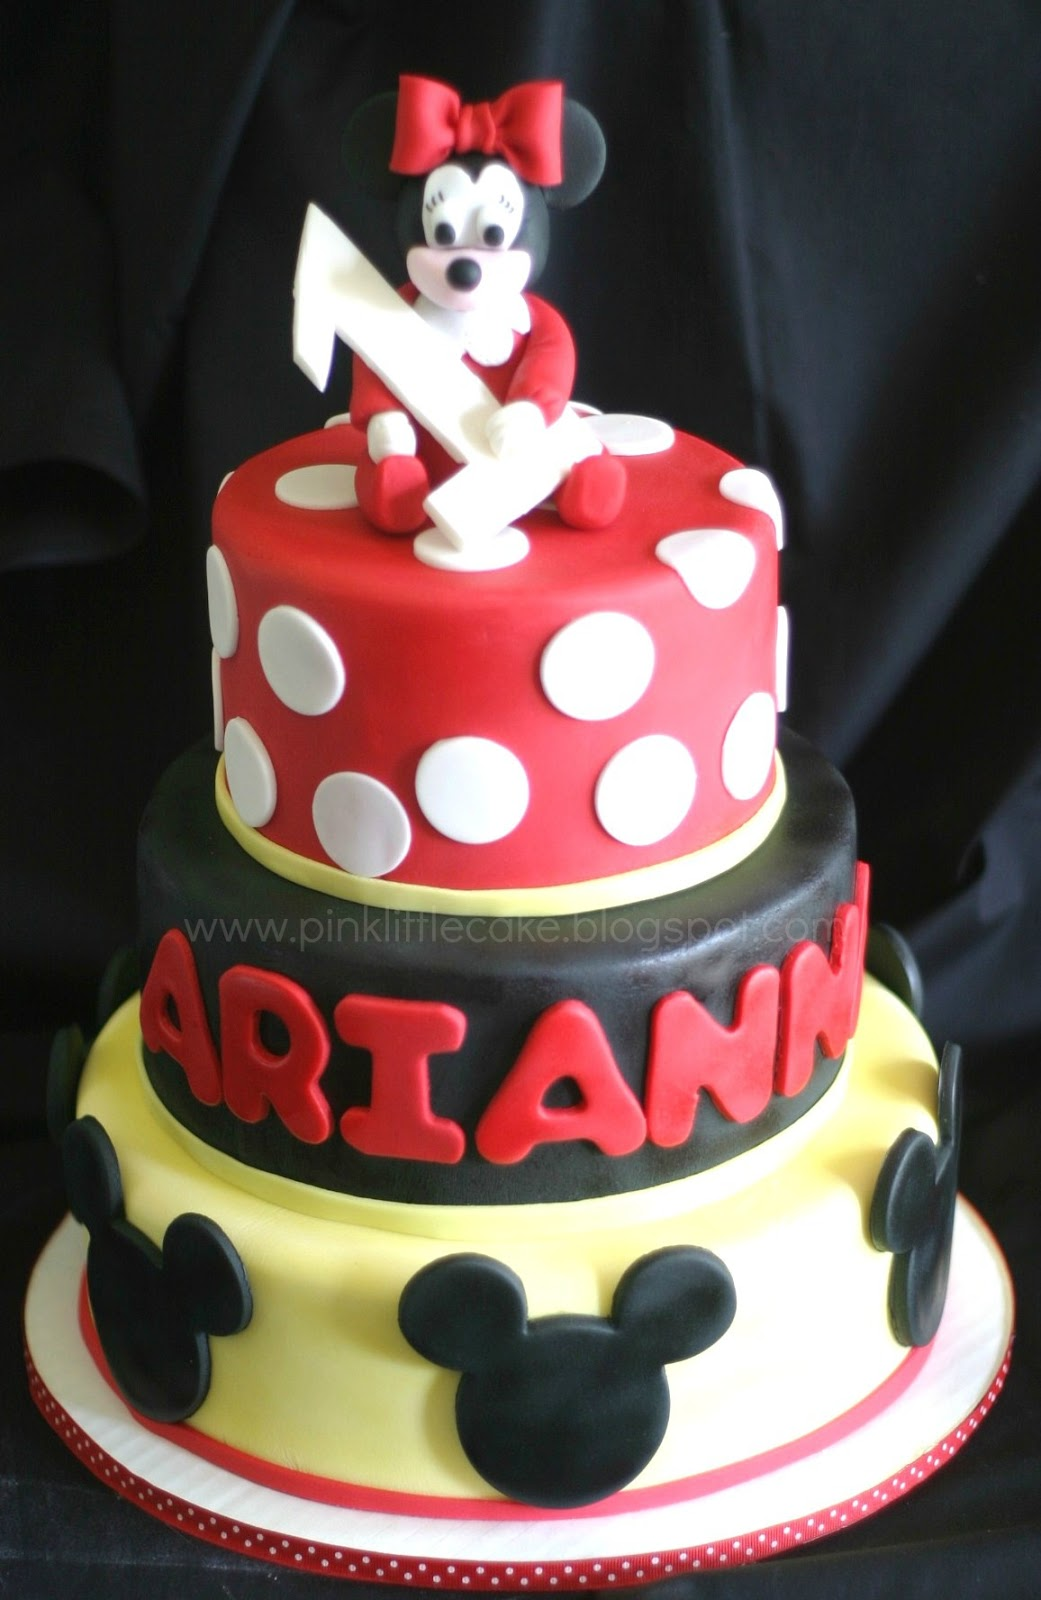 Pink Little Cake Red Pj S Baby Minnie Mouse Cake